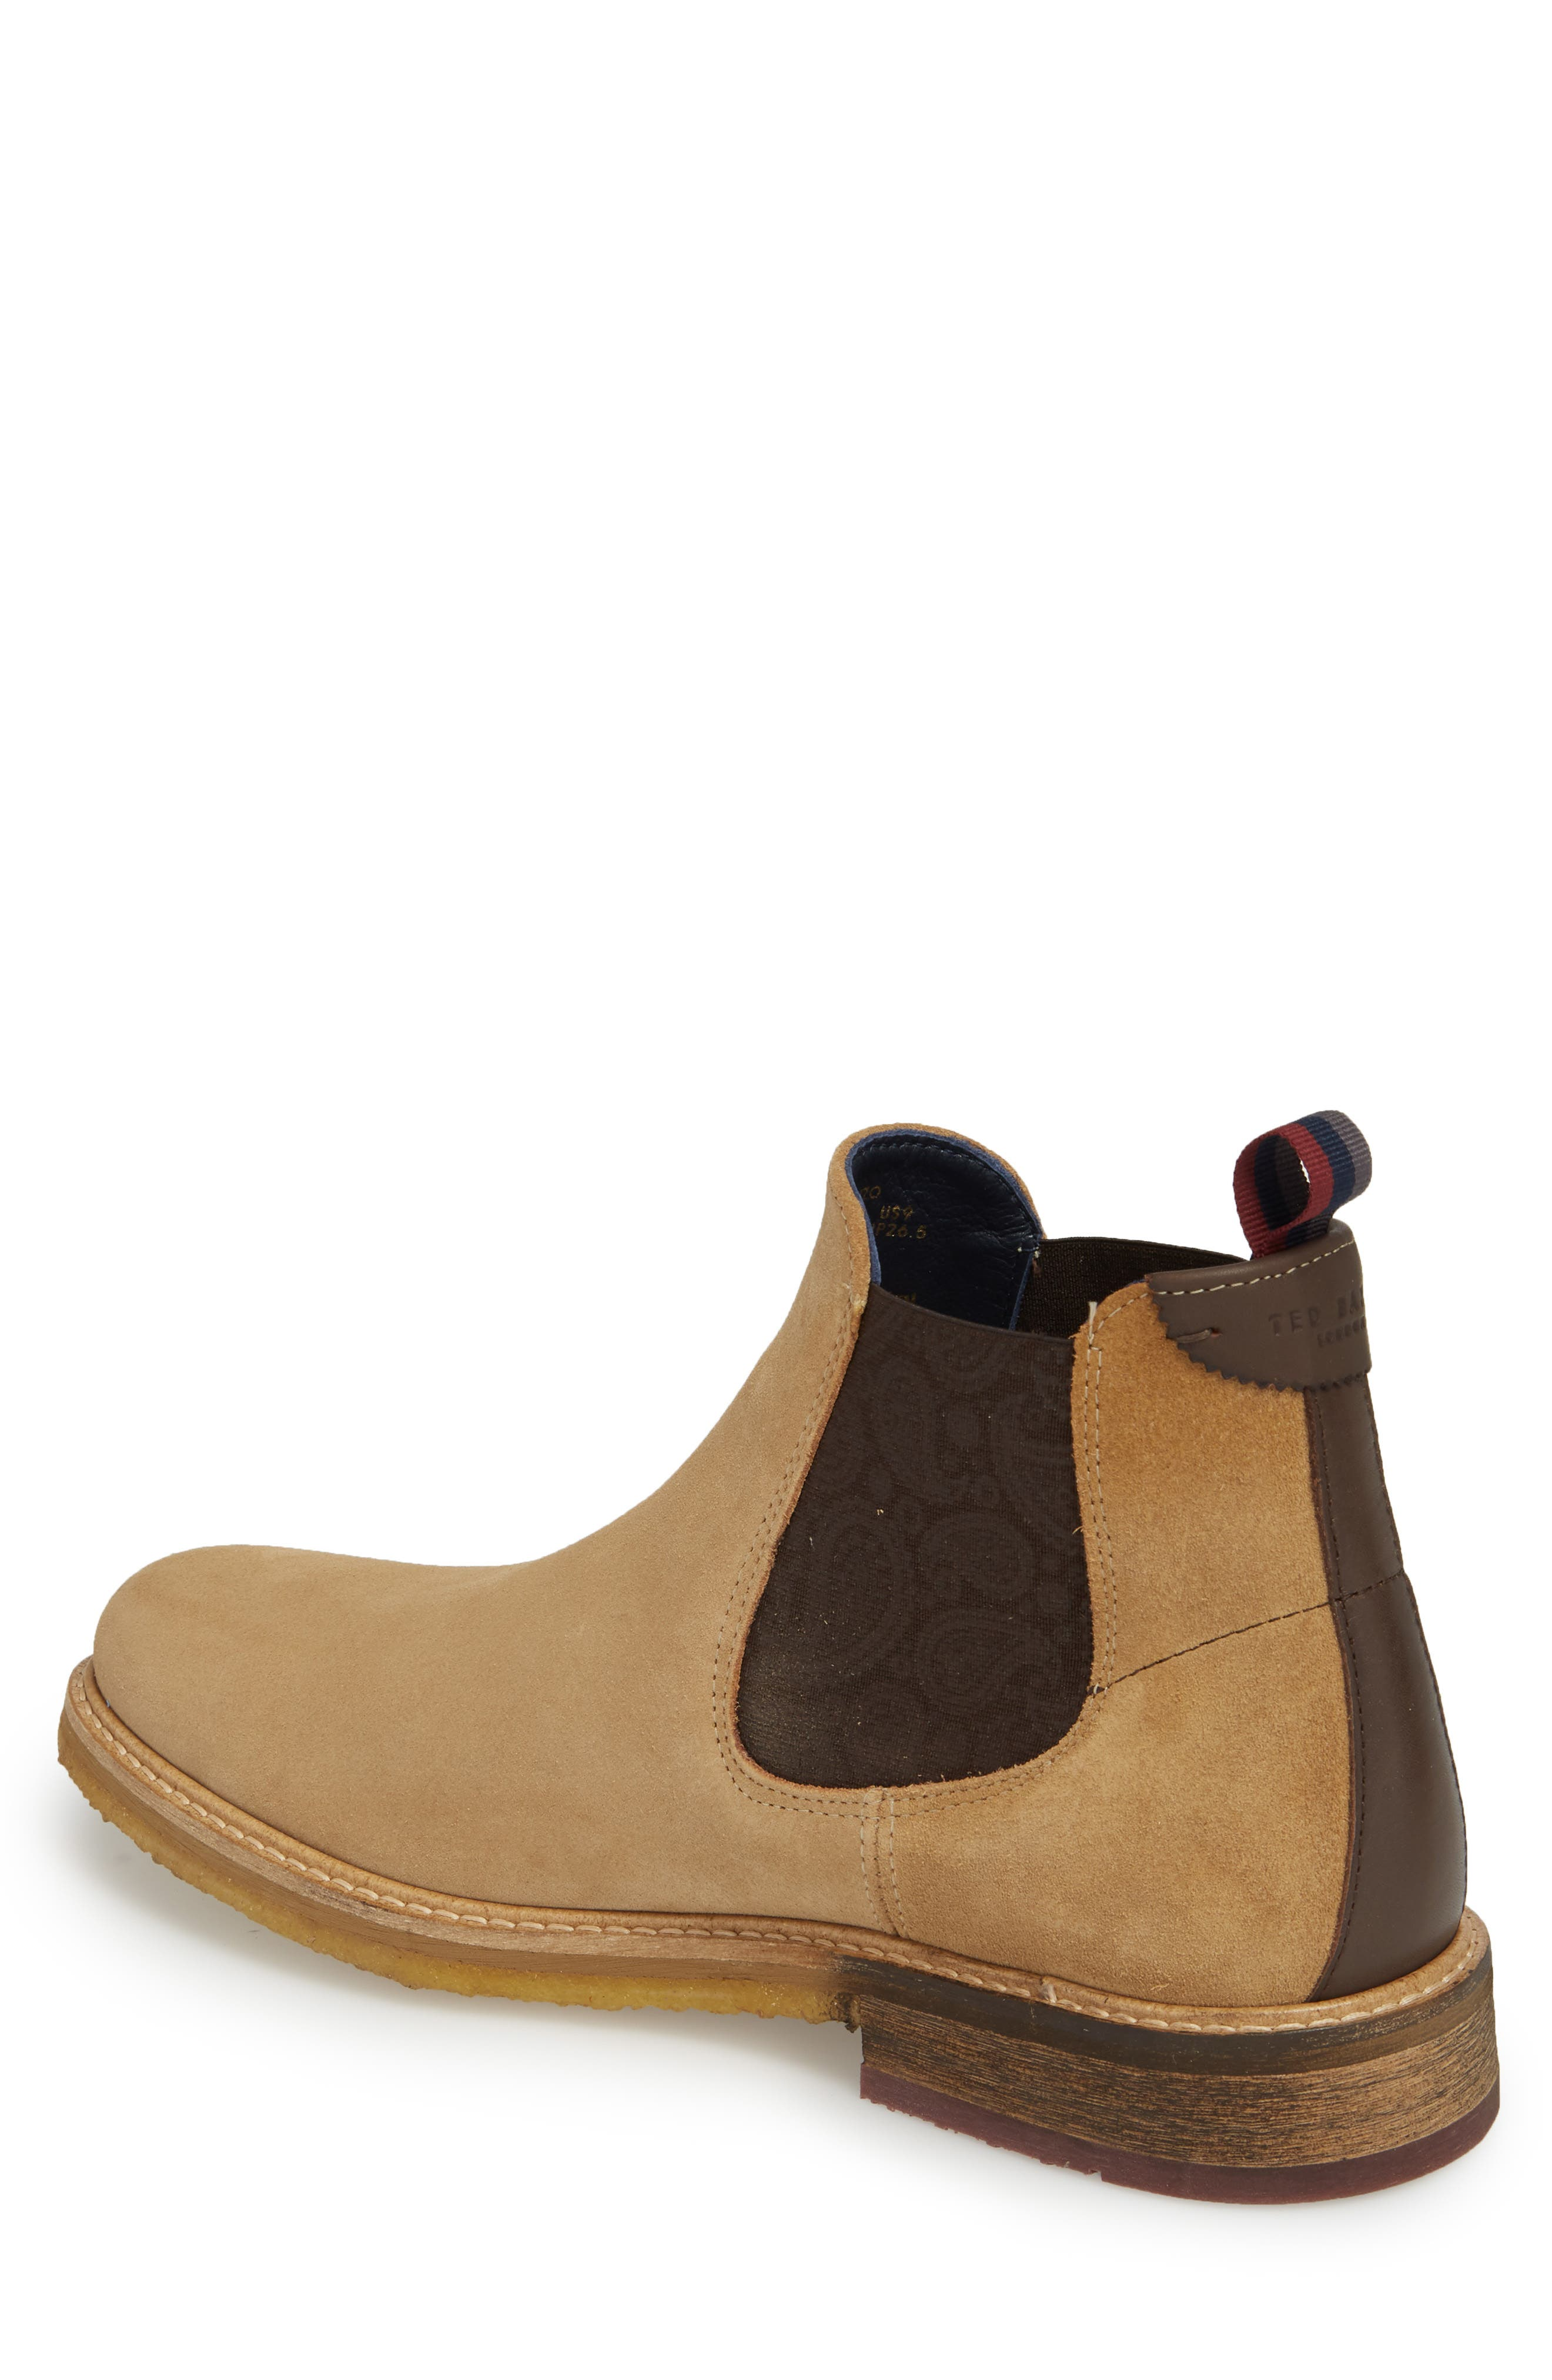 Bronzo Chelsea Boot,                             Alternate thumbnail 2, color,                             Sand Suede